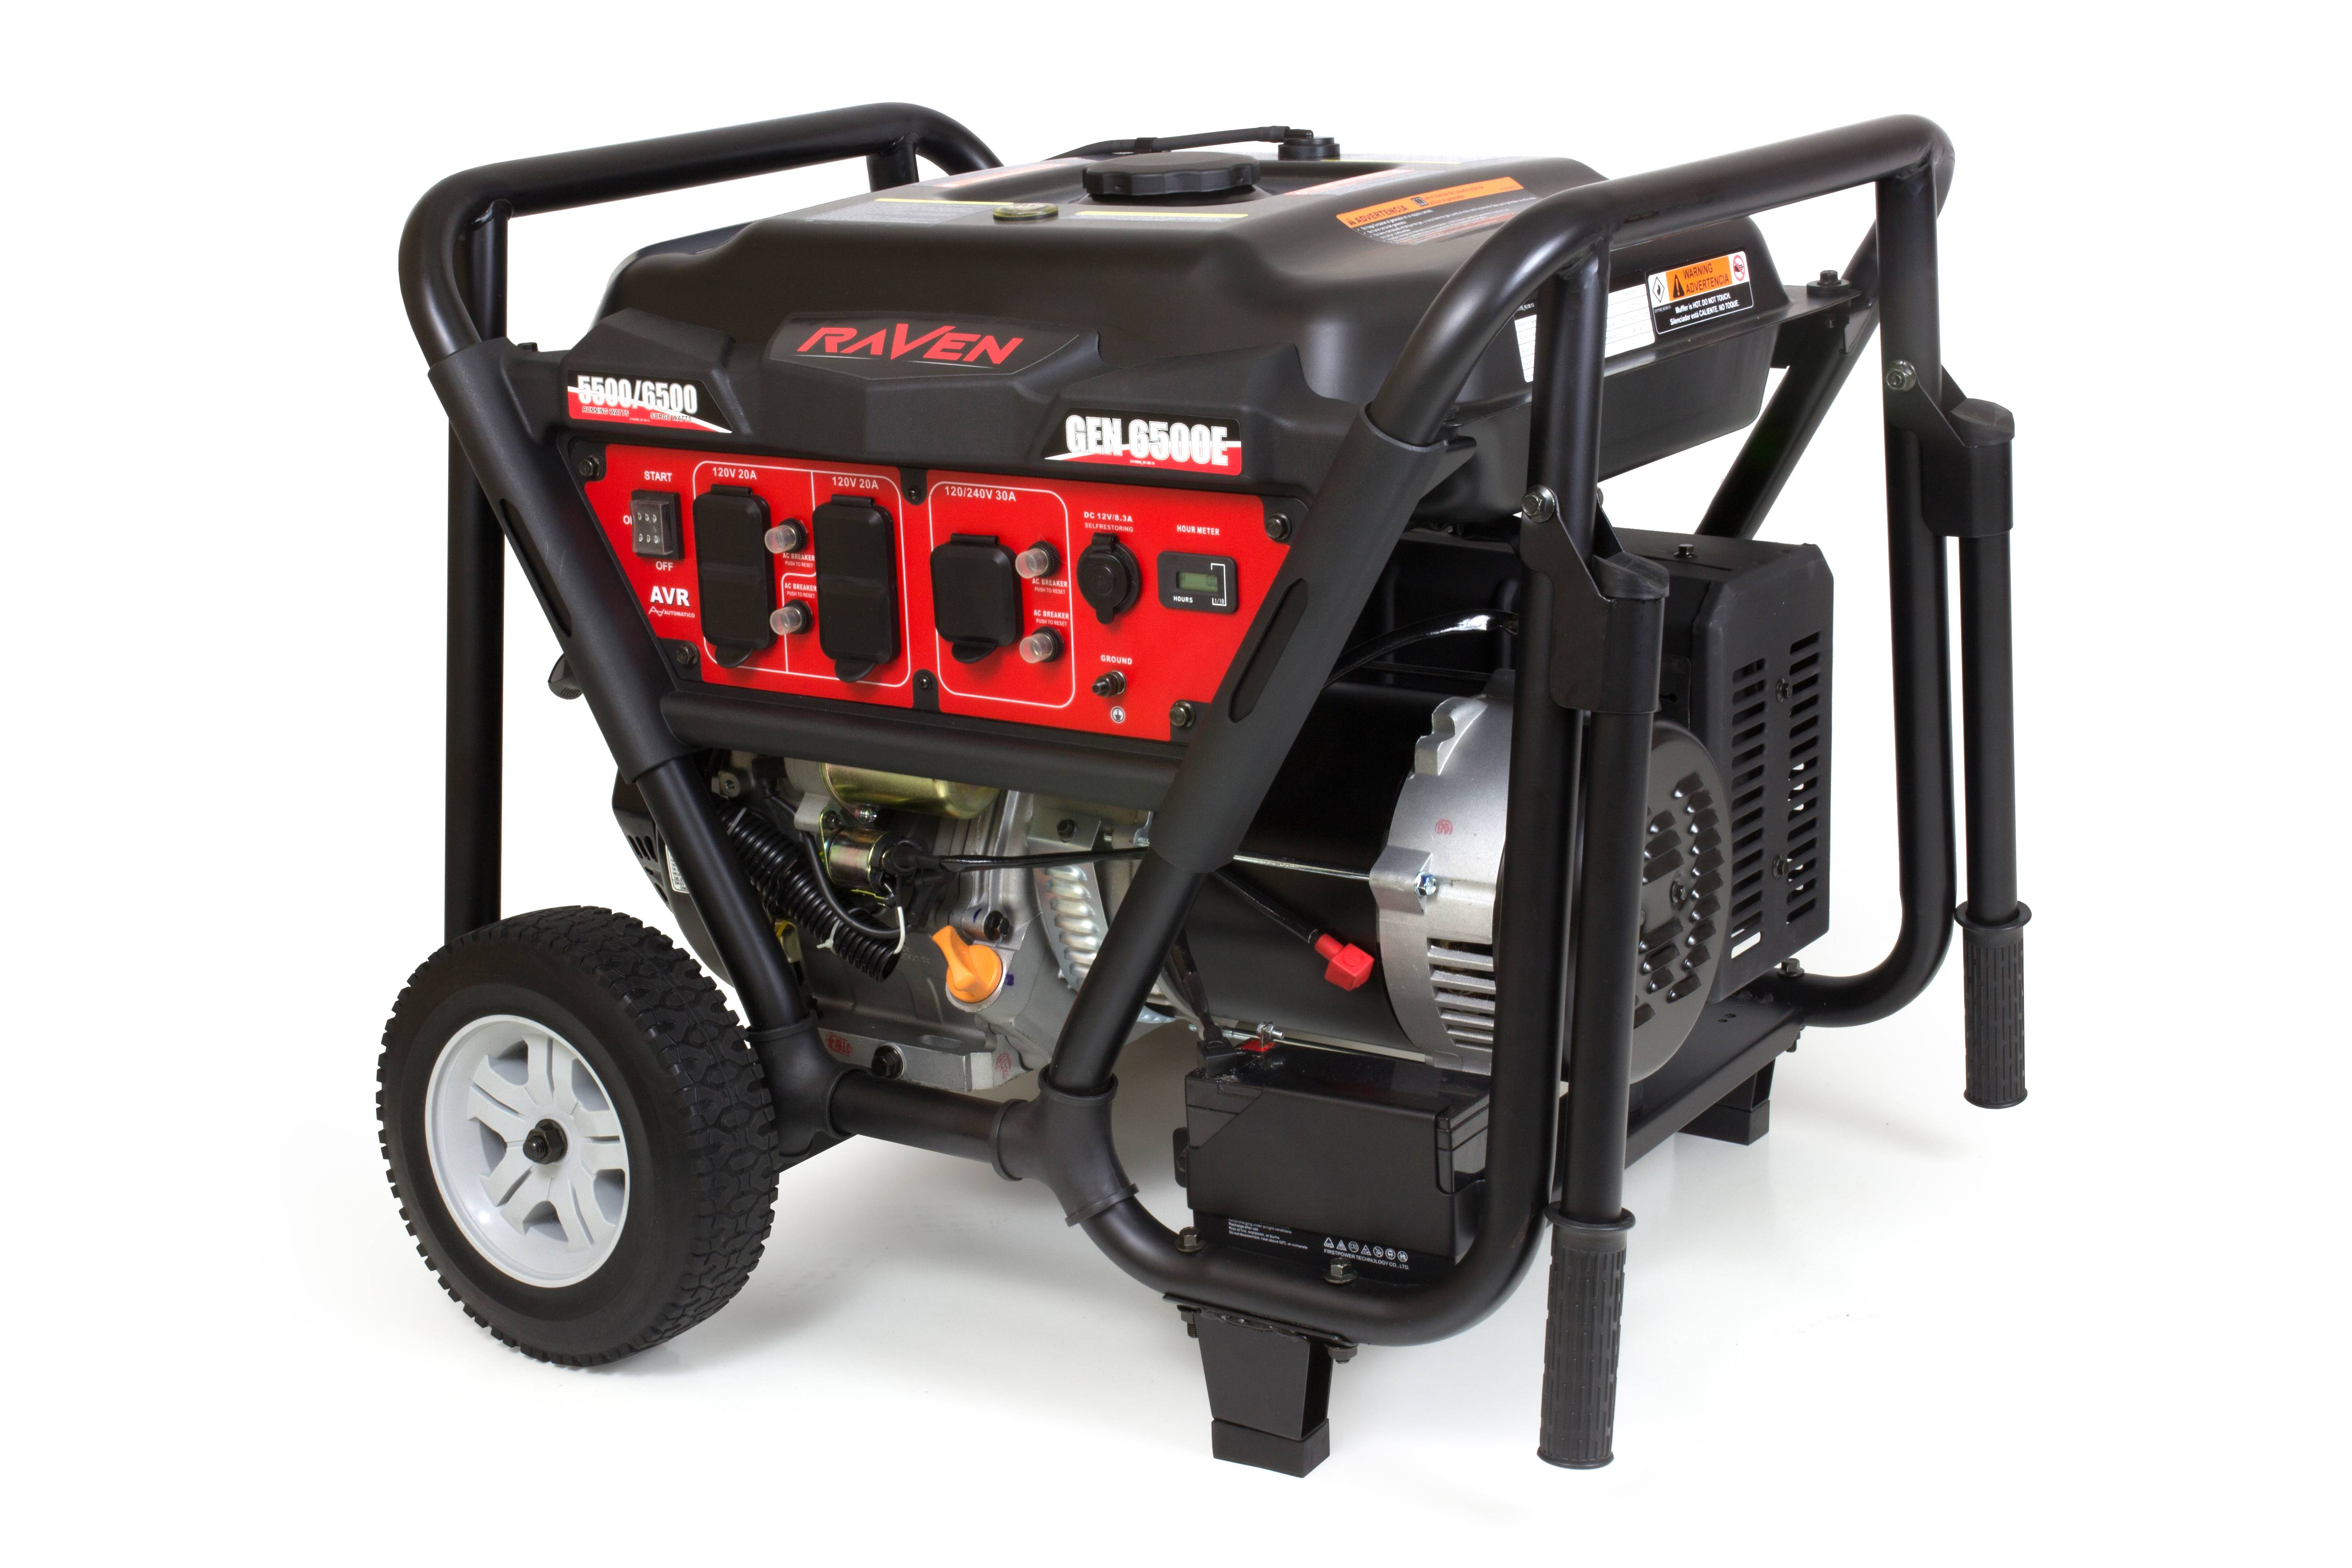 Raven Mpv 6500 Generator Wiring Diagram - Year of Clean Water on